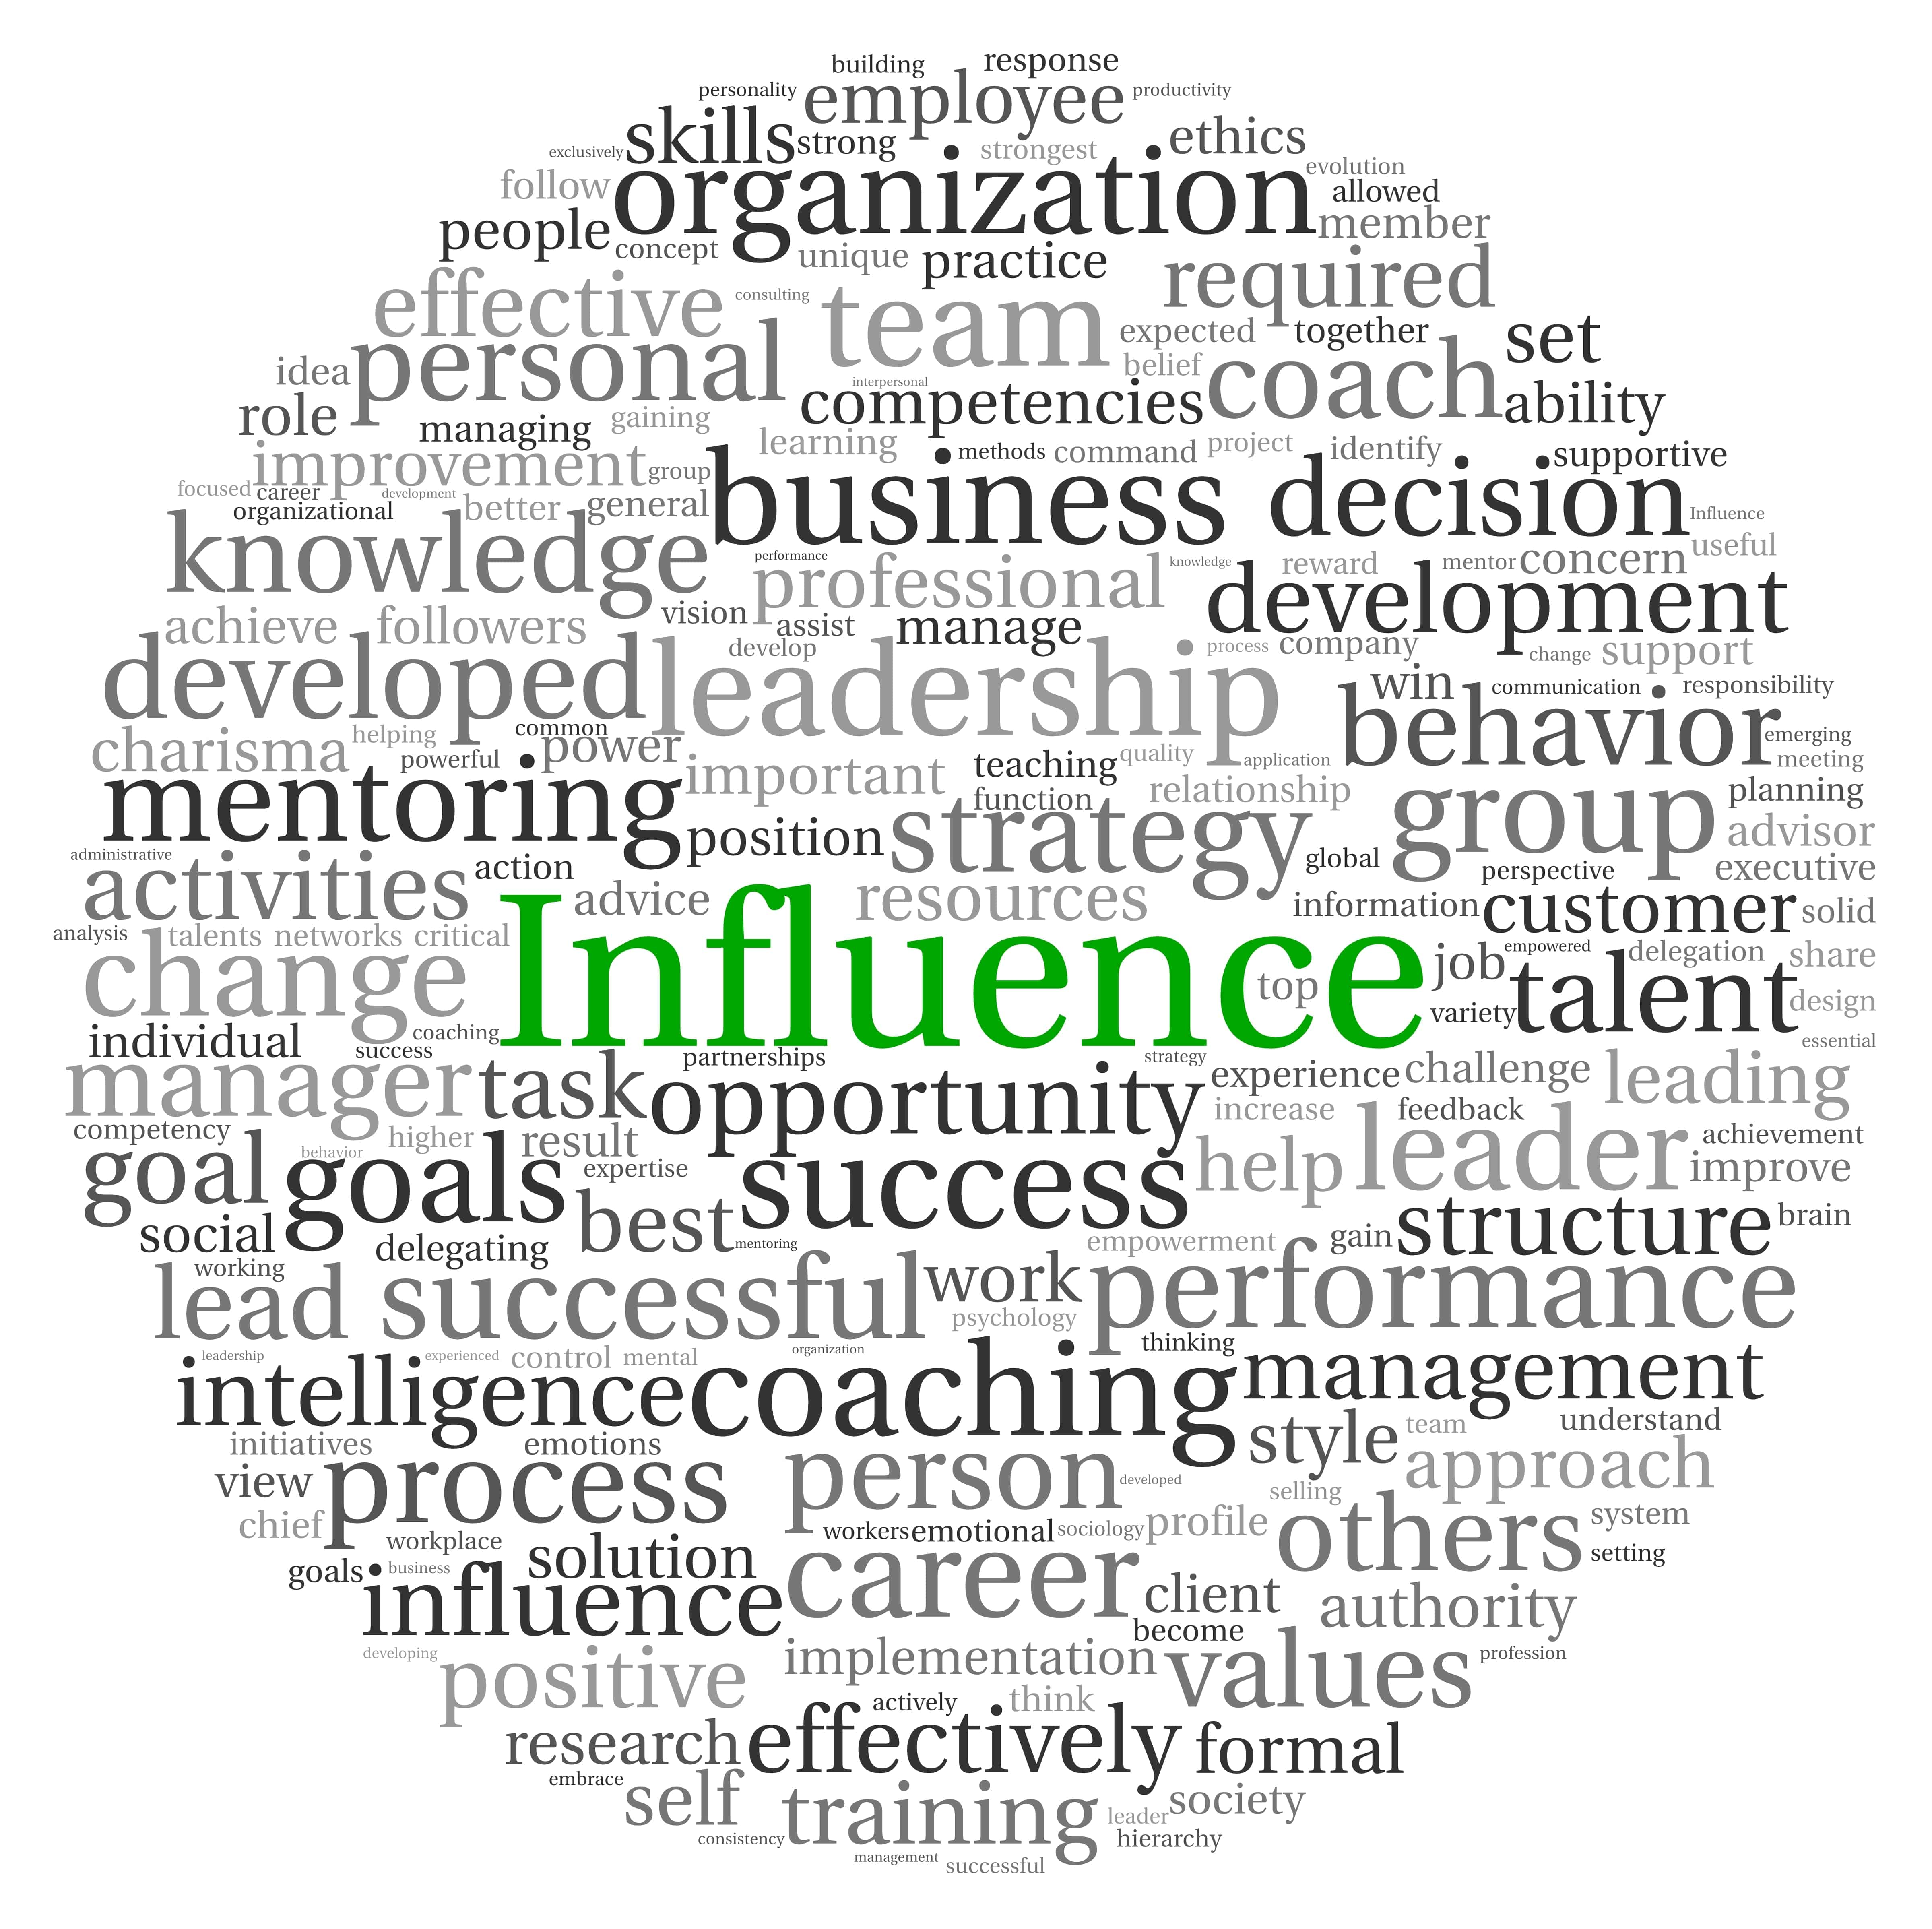 A few ways to build influence on social media